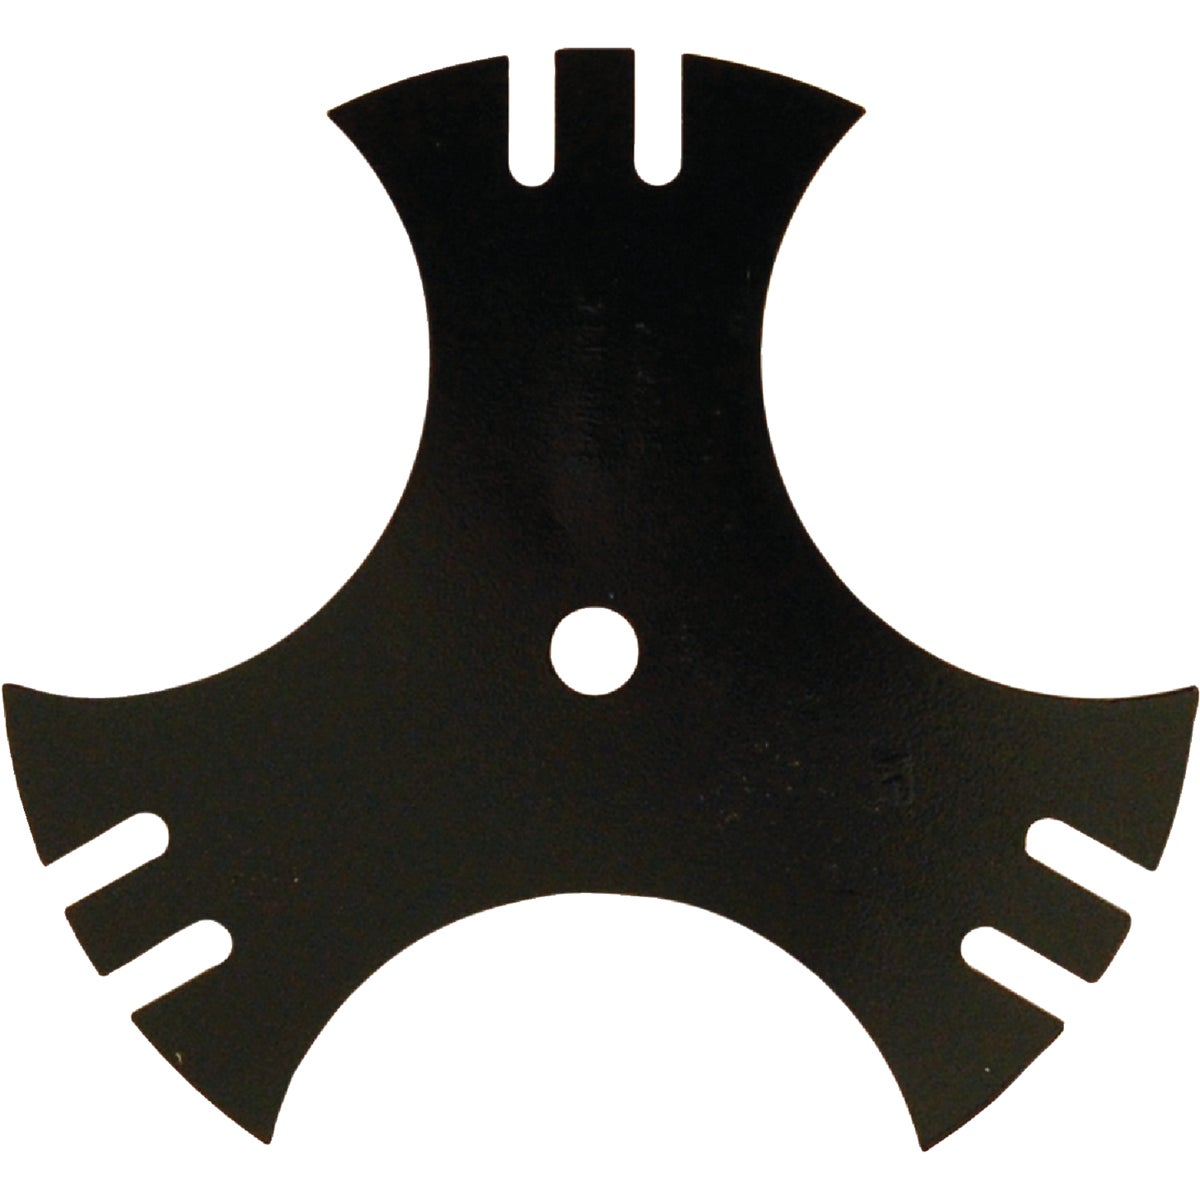 9X9 MTD EDGER BLADE - 490-105-M017 by Arnold Corp